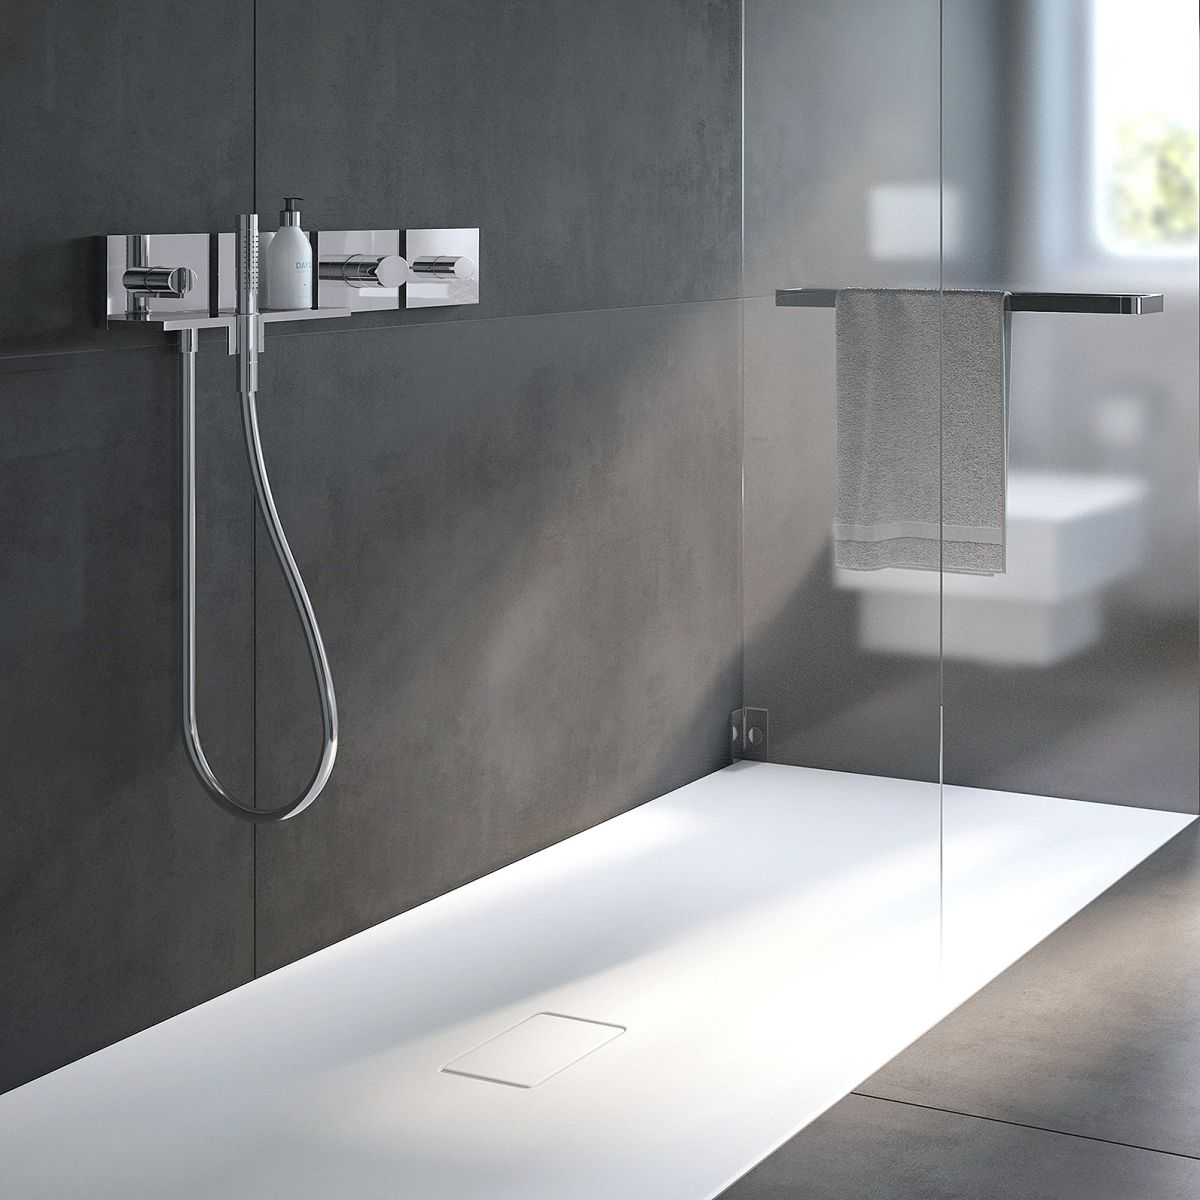 Kaldewei Xetis Kaldewei Conoflat Rectangular Shower Tray